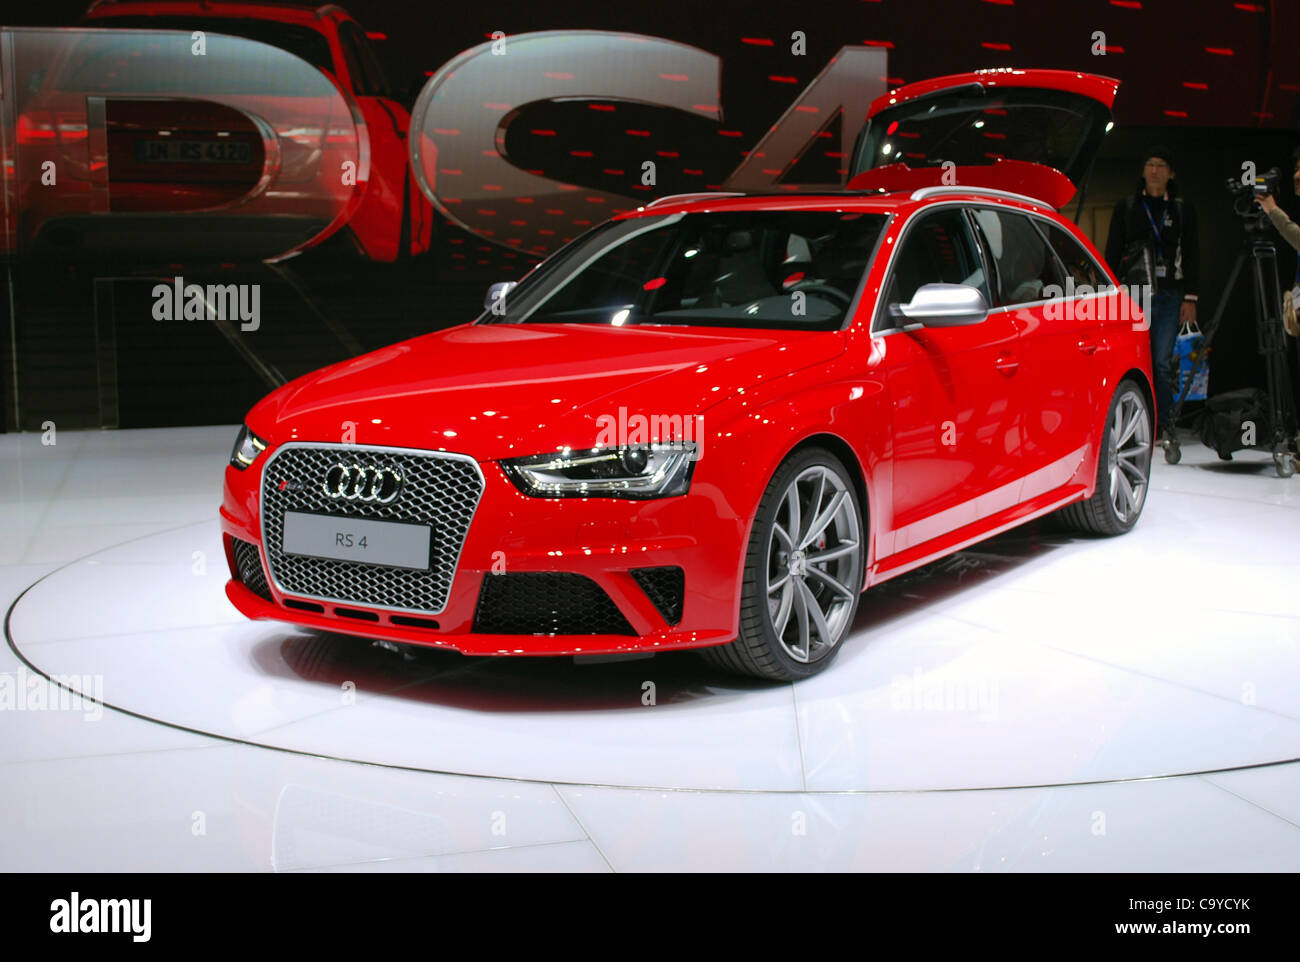 audi rs4 stock photos audi rs4 stock images alamy. Black Bedroom Furniture Sets. Home Design Ideas